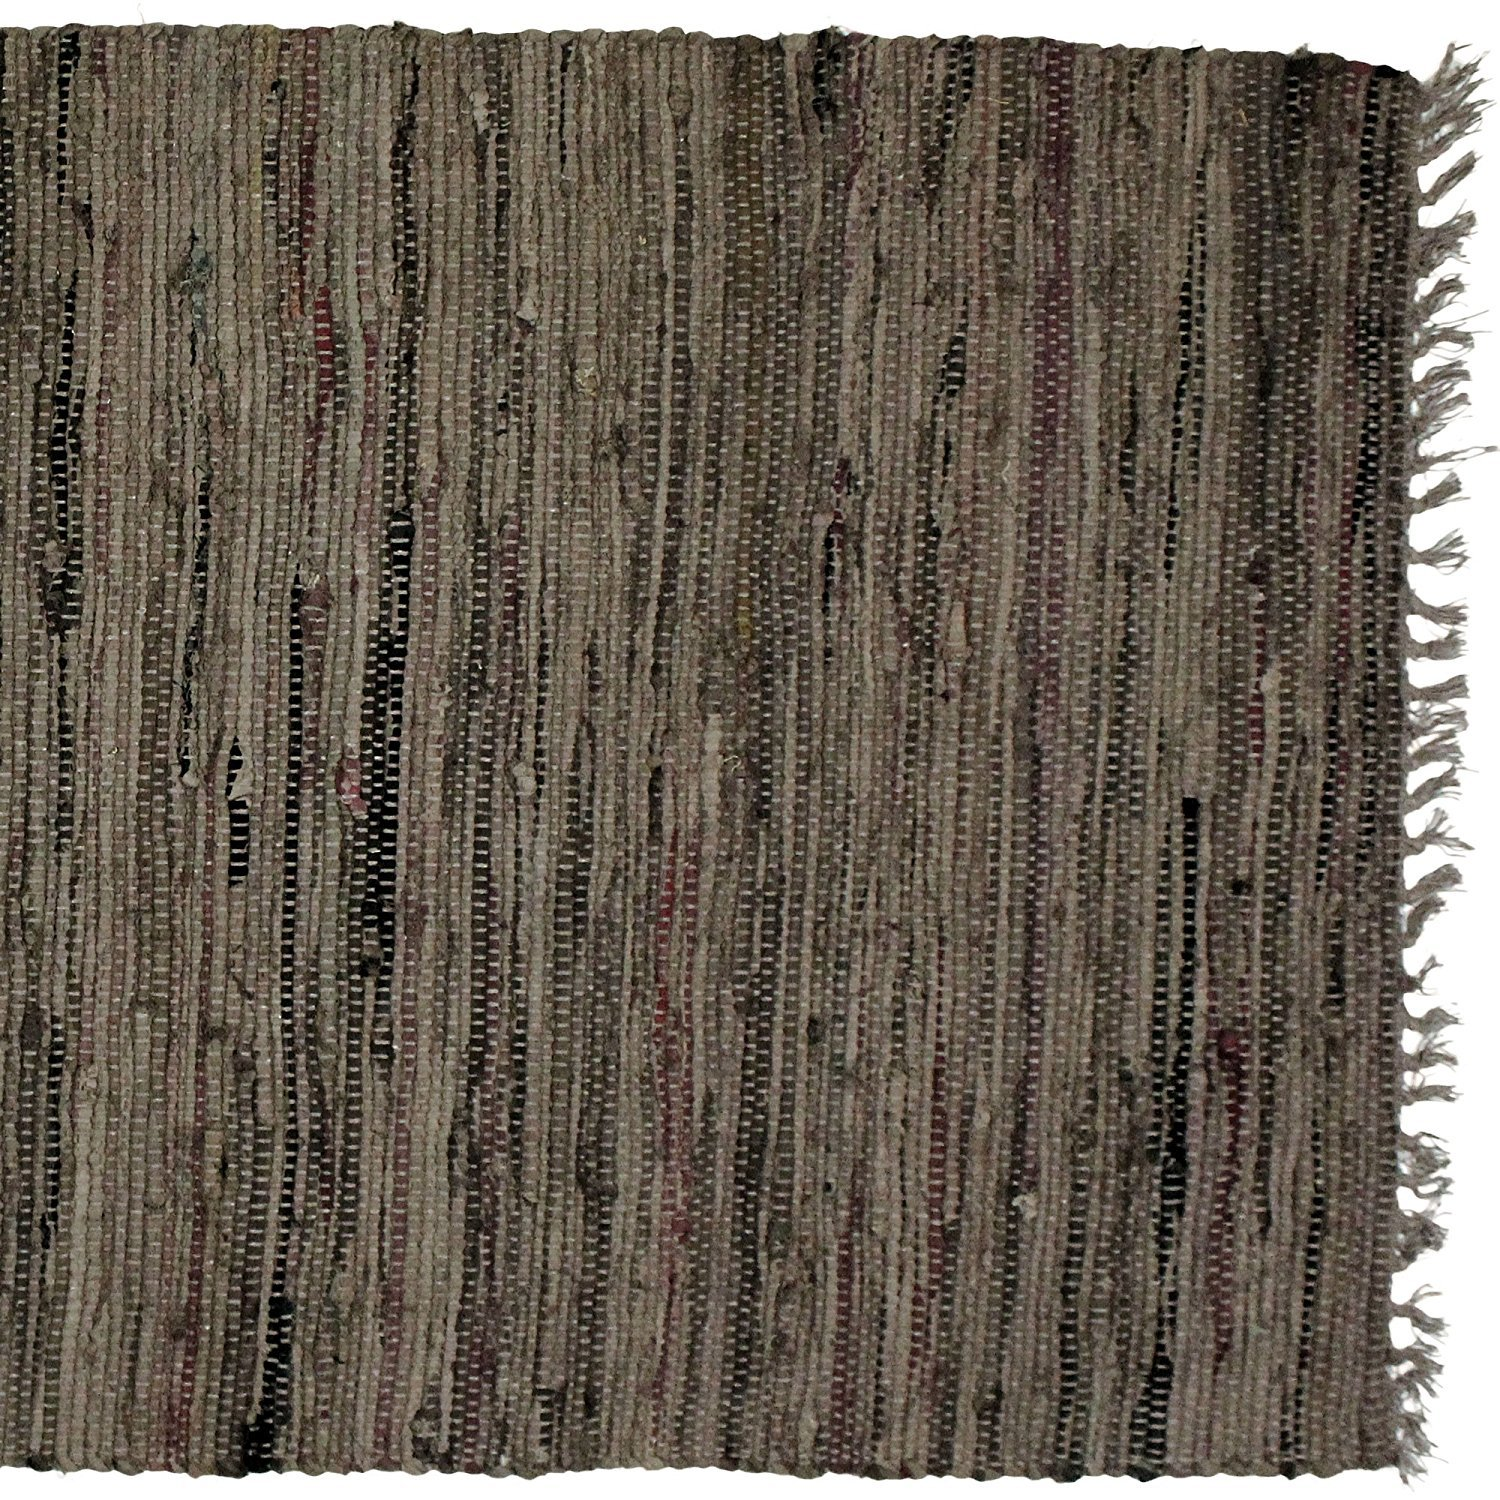 Sturbridge Country Rag Rug in Tobacco 24'' x 72'' by India Overseas Traders (Image #2)